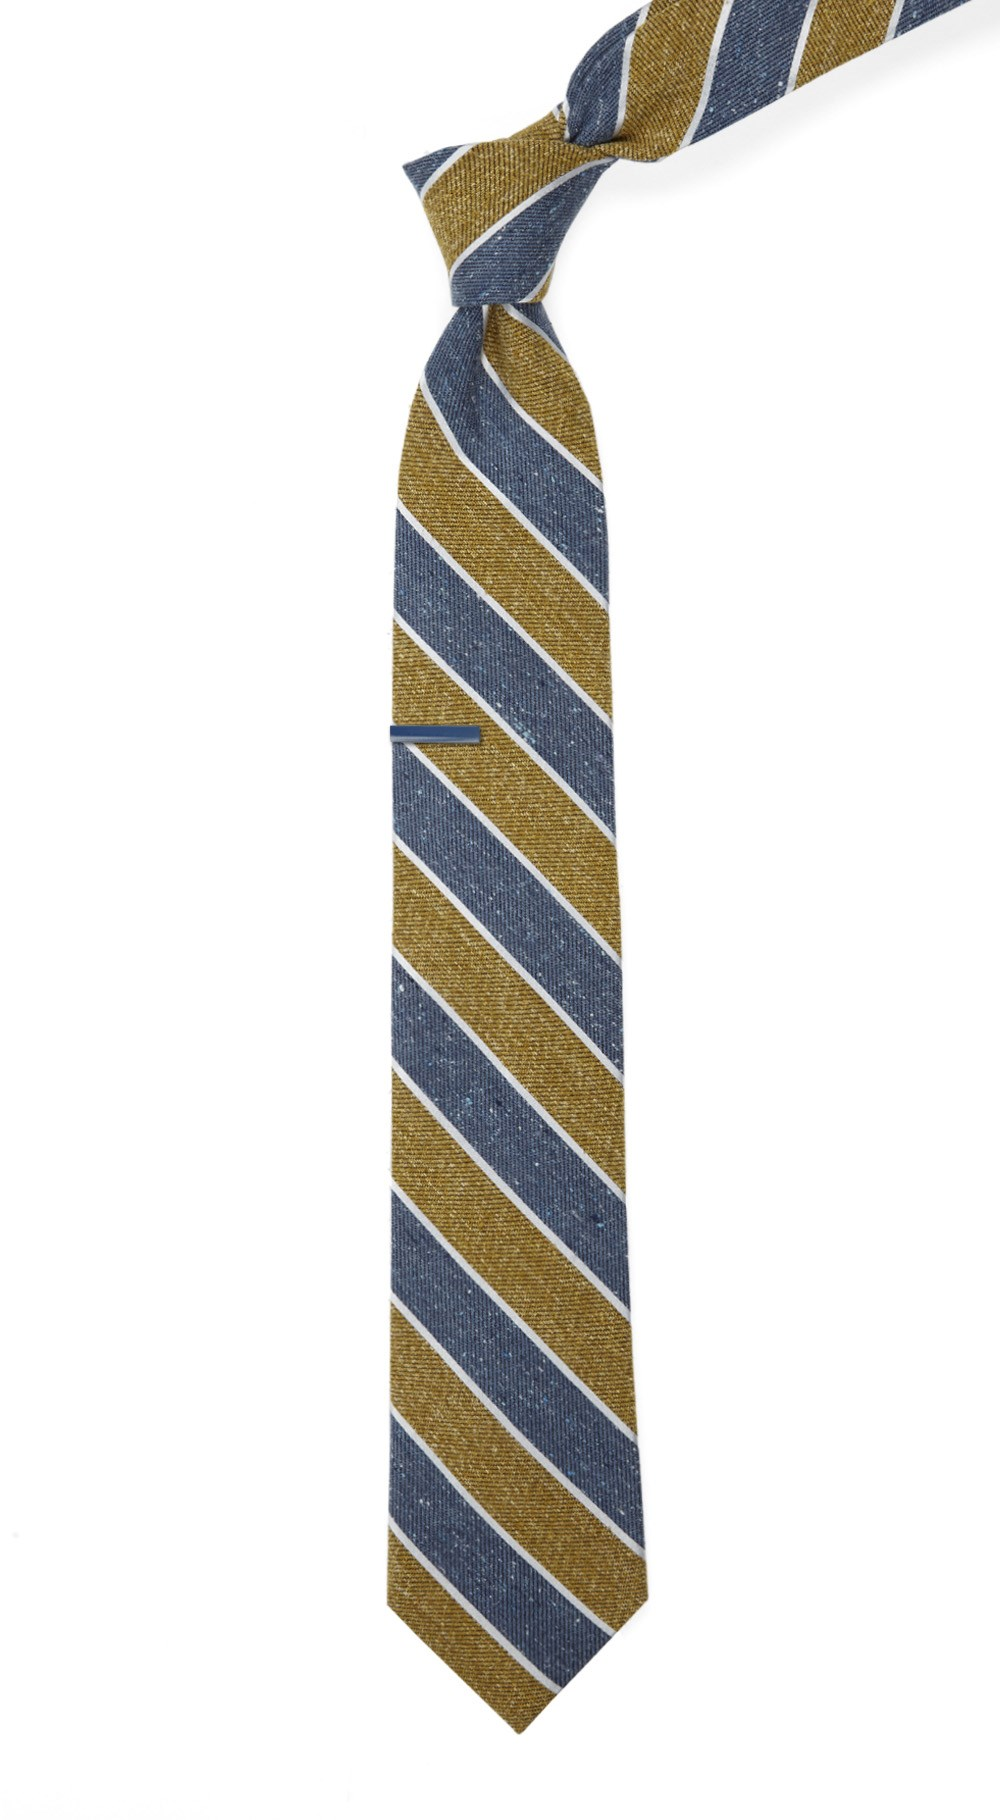 New 1920s Mens Ties & Bow Ties Splattered Repp Stripe $19.00 AT vintagedancer.com